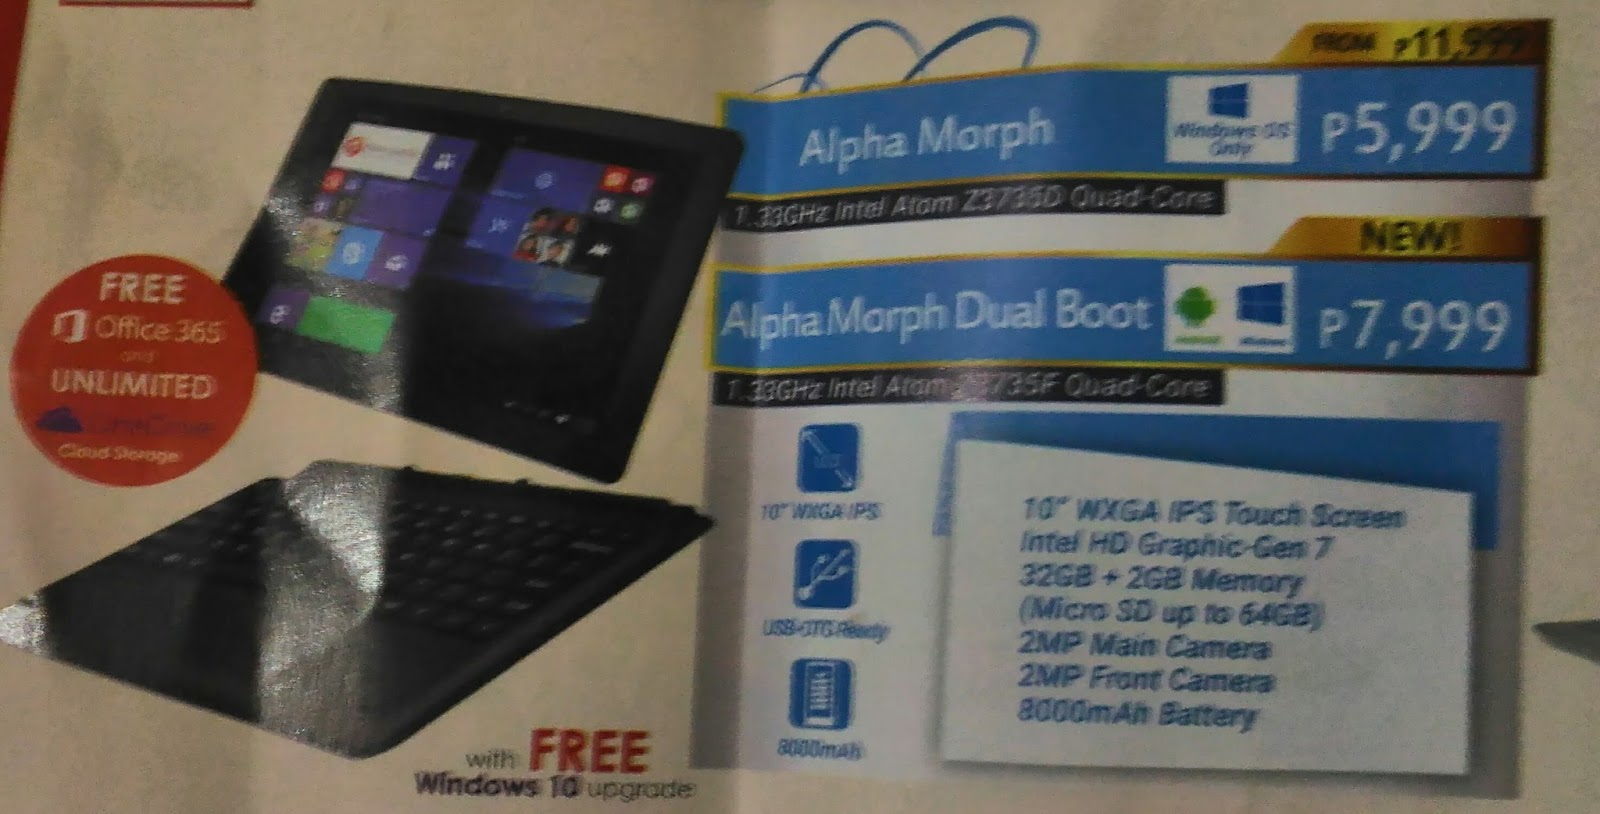 Cherry Mobile Refreshes Their Tablet Laptop Hybrid Morph By Giving It Dual Boot Running Android 4 Kitkat And Windows 8 1 Os